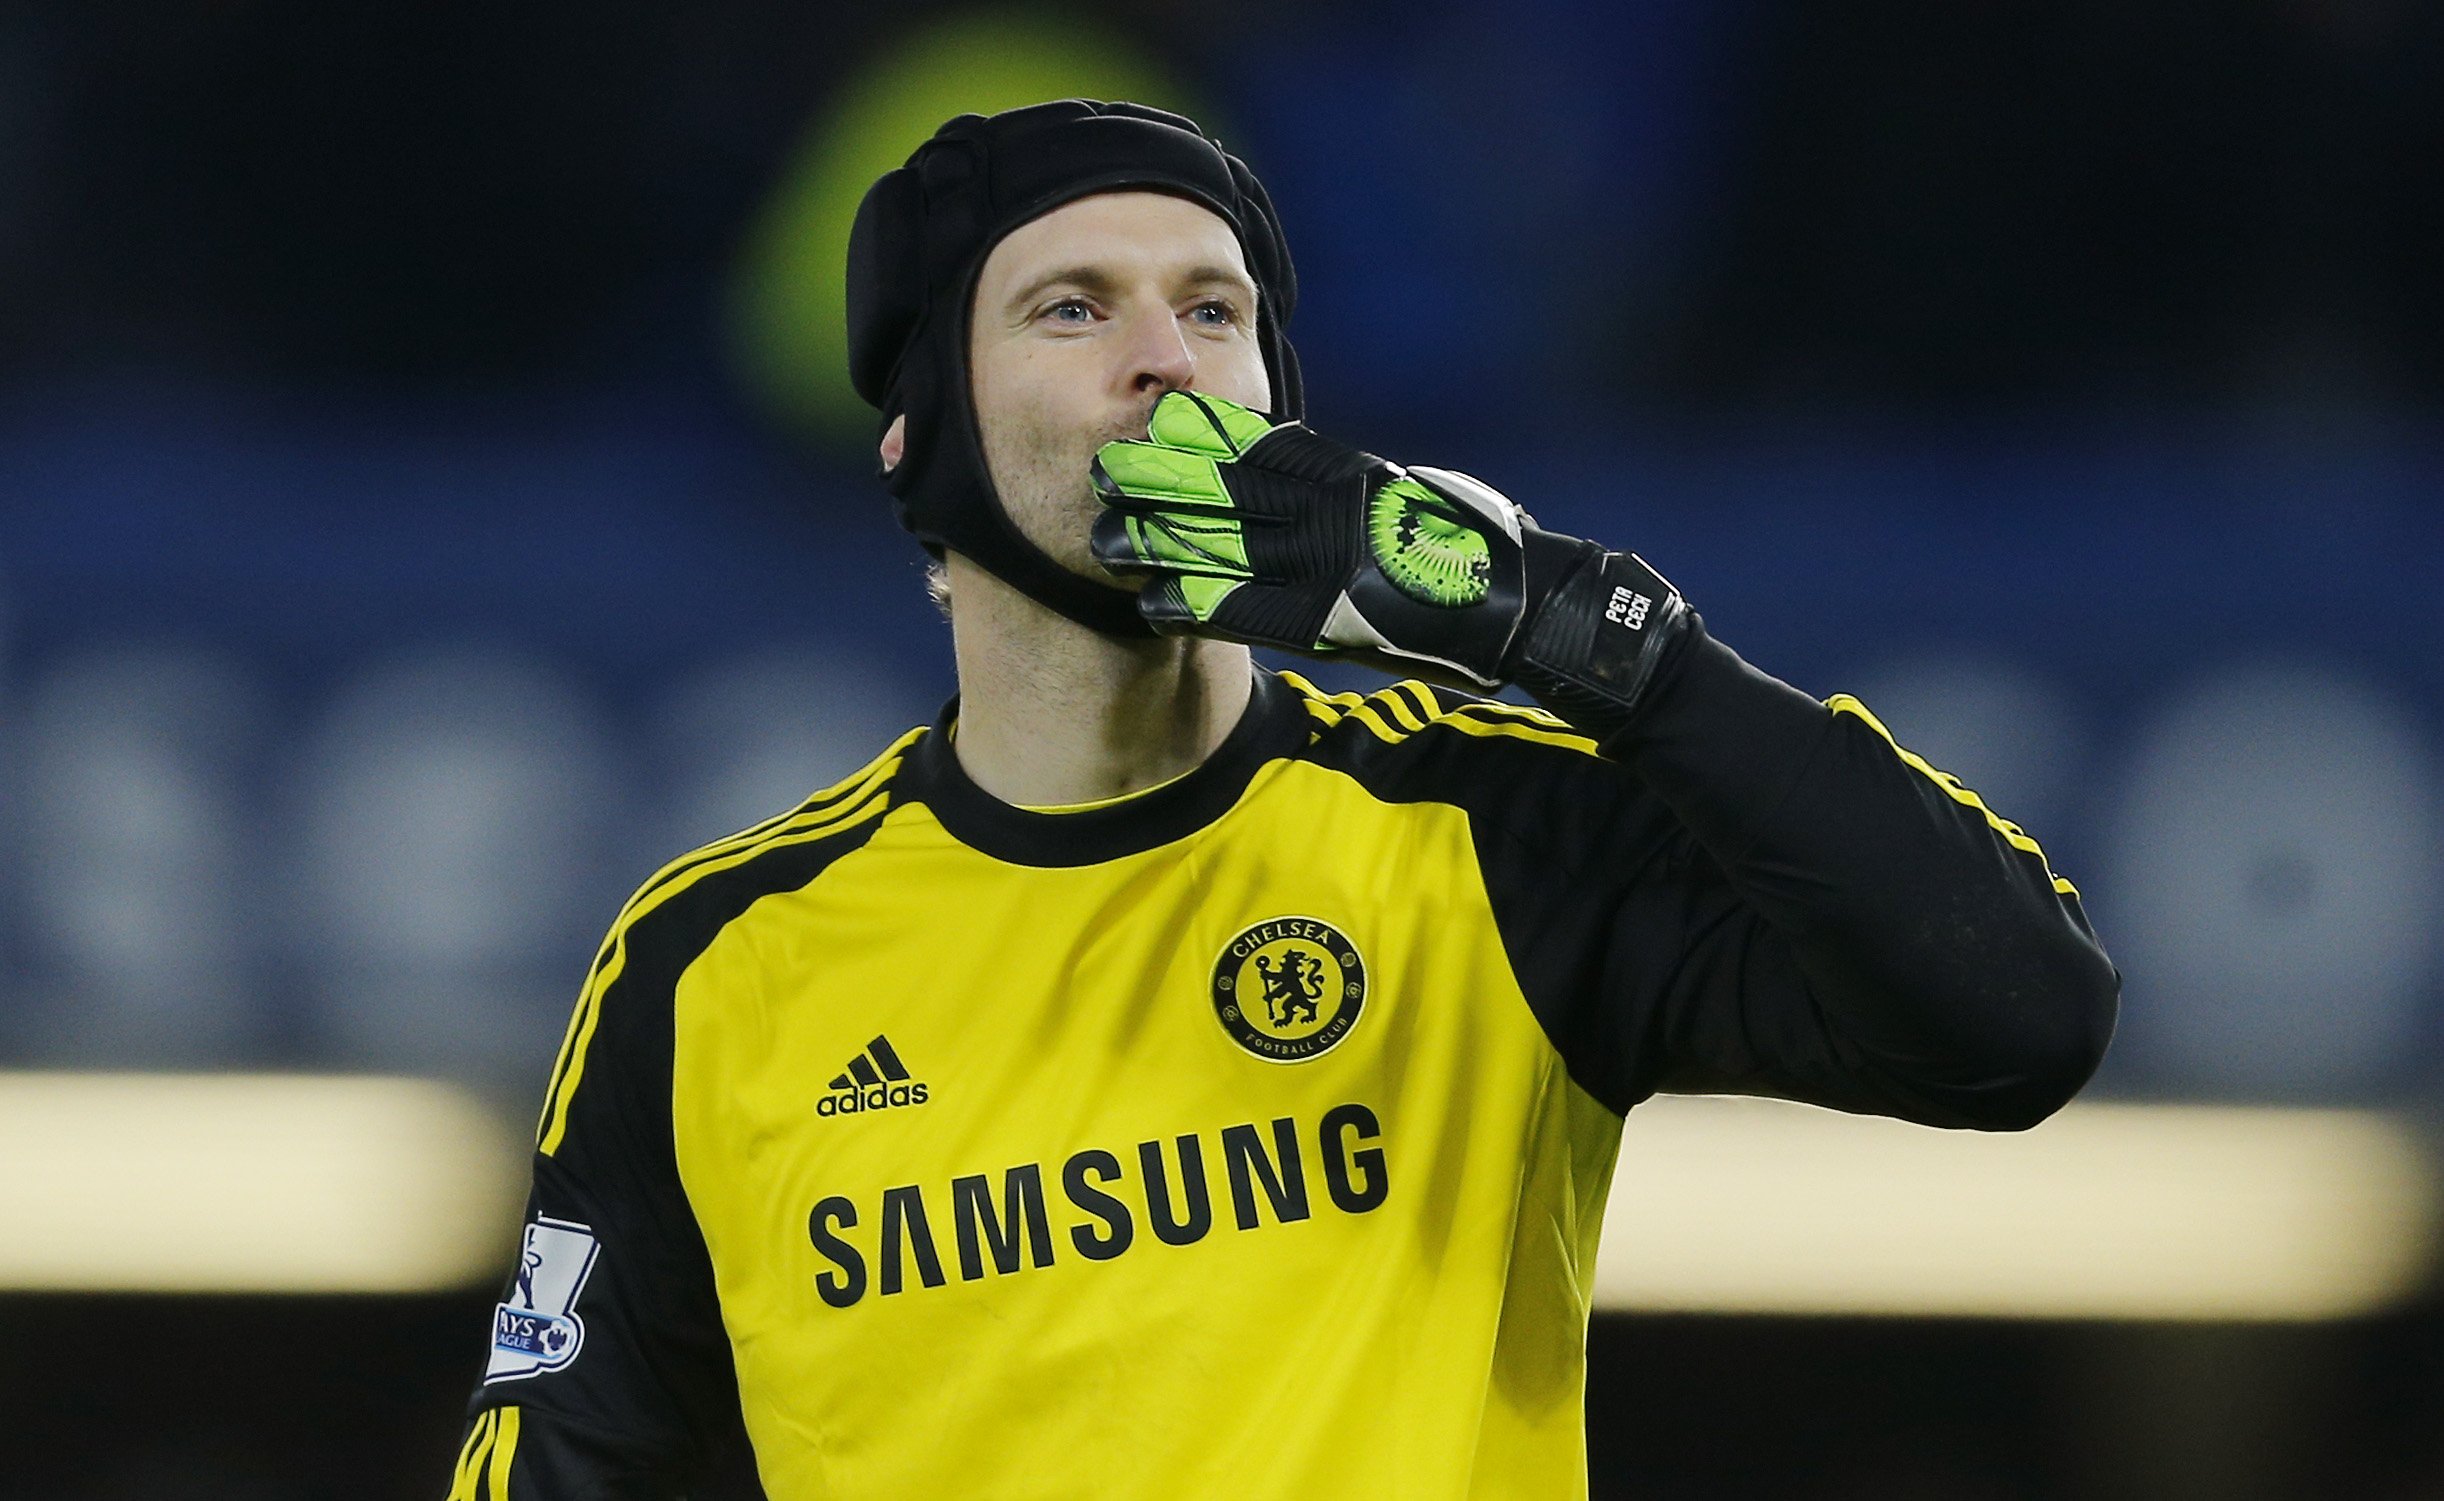 Watch Petr Cech saving goals - here are the best Petr Cech saves goal videos!